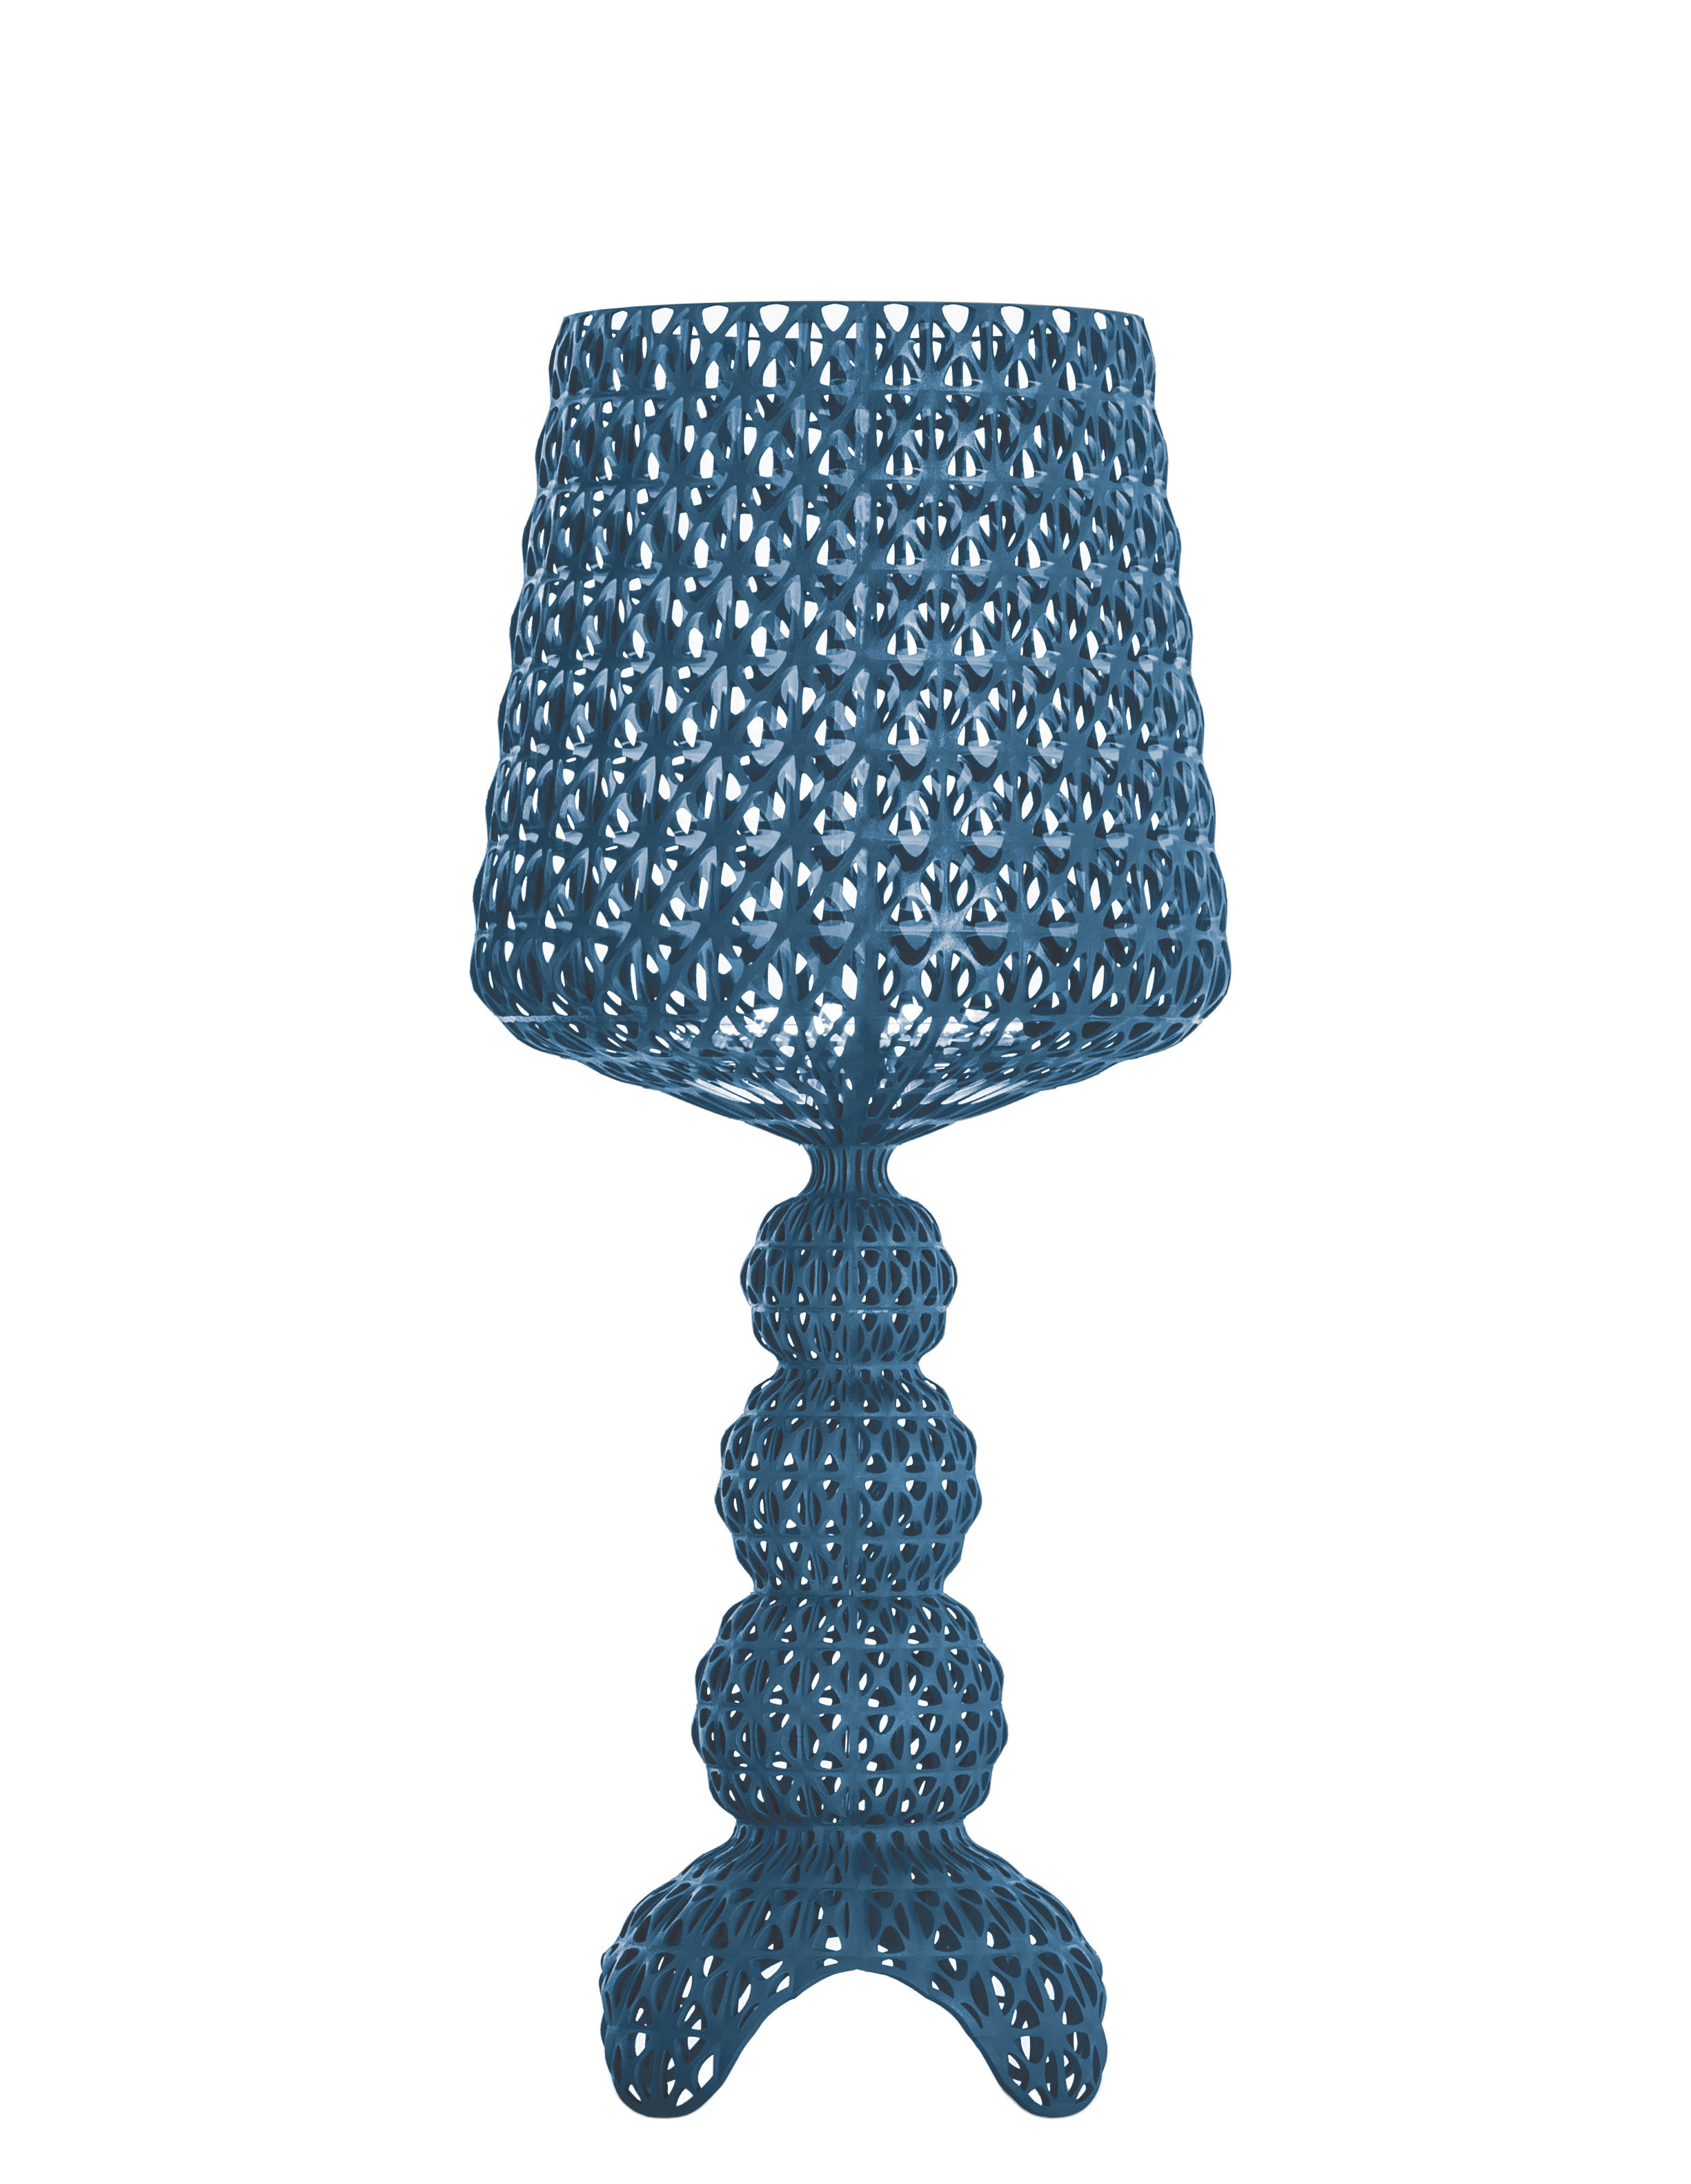 Lighting - Table Lamps - Mini Kabuki Lamp - / LED by Kartell - Blue - Thermoplastic technopolymer